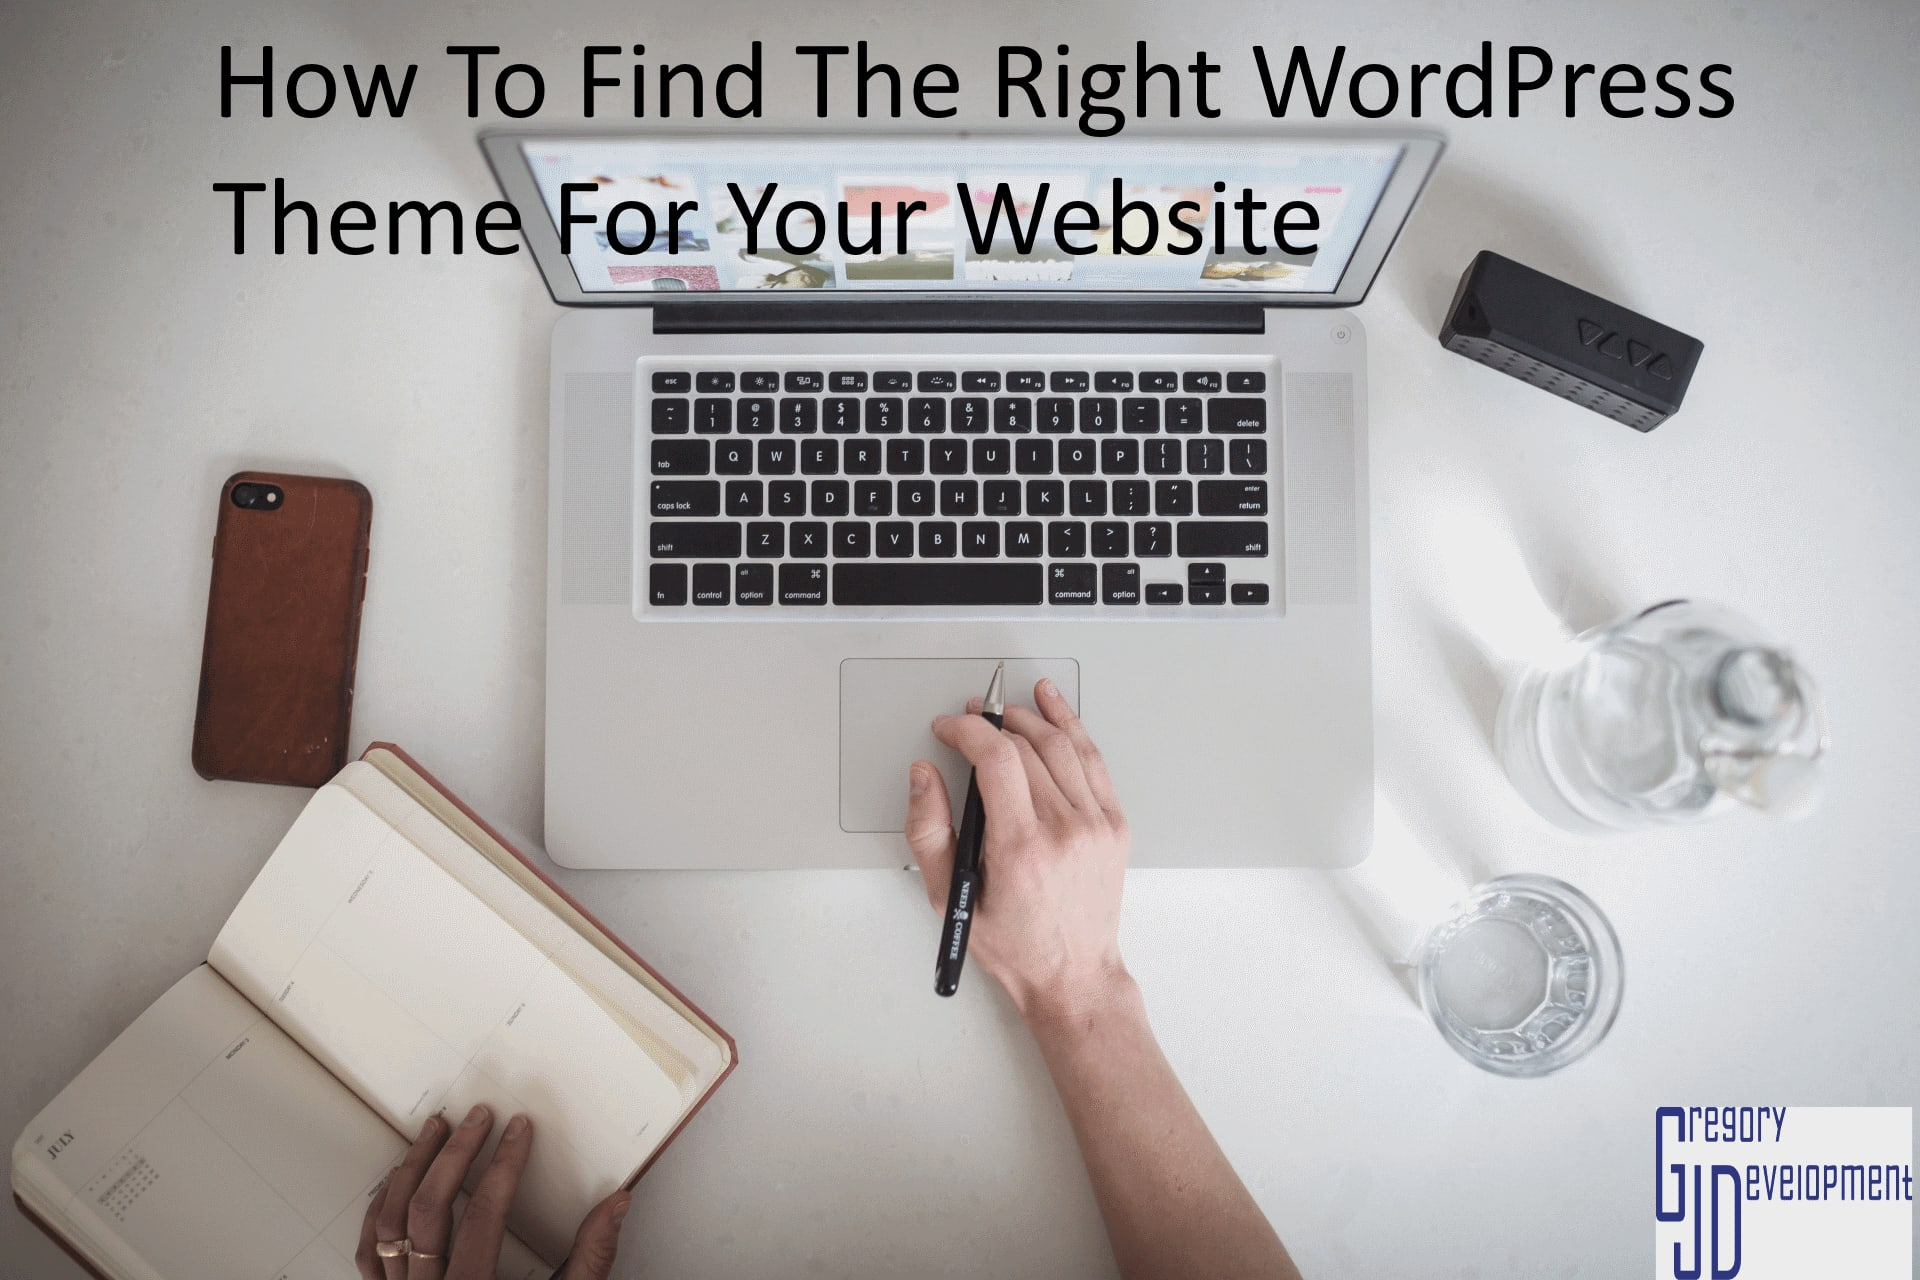 How To Find The Right WordPress Theme For Your Website